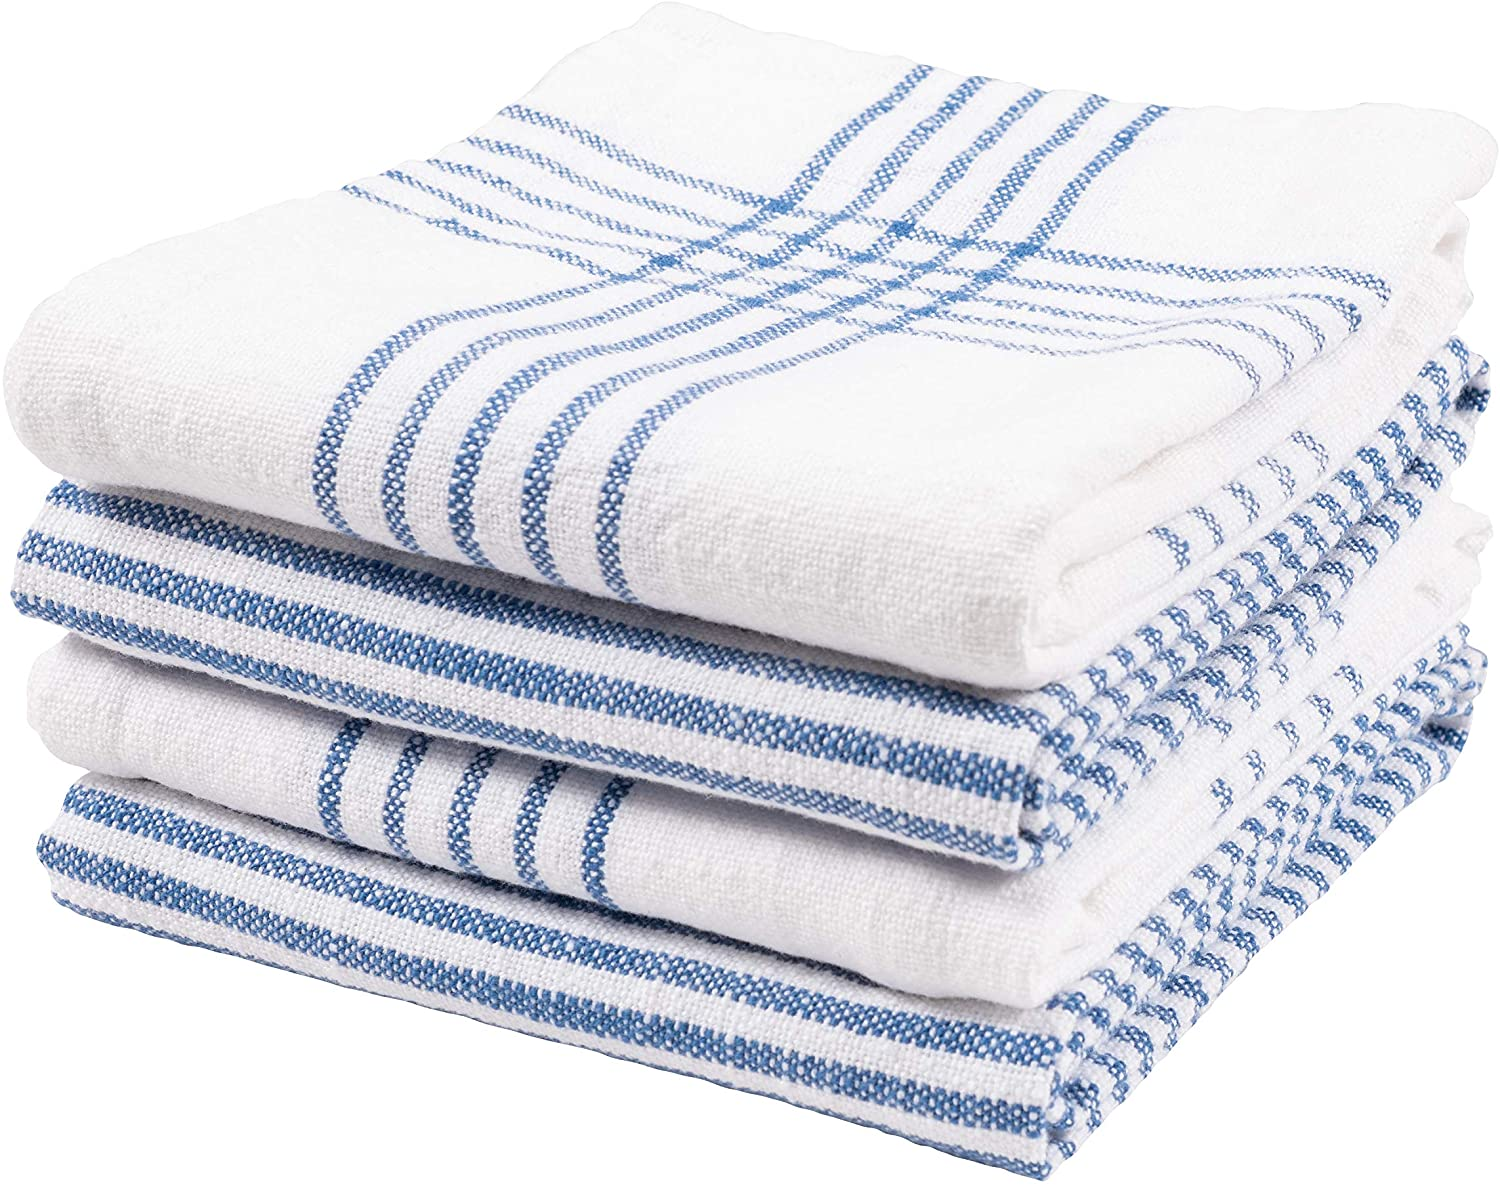 KAF Home Set of 4 Monaco Relaxed Casual Slubbed Kitchen Towel | 100% Cotton Dish Towel, 18 x 28 Inches | Soft and Absorbent Farmhouse Kitchen Towel | Set of 4 (Blue)